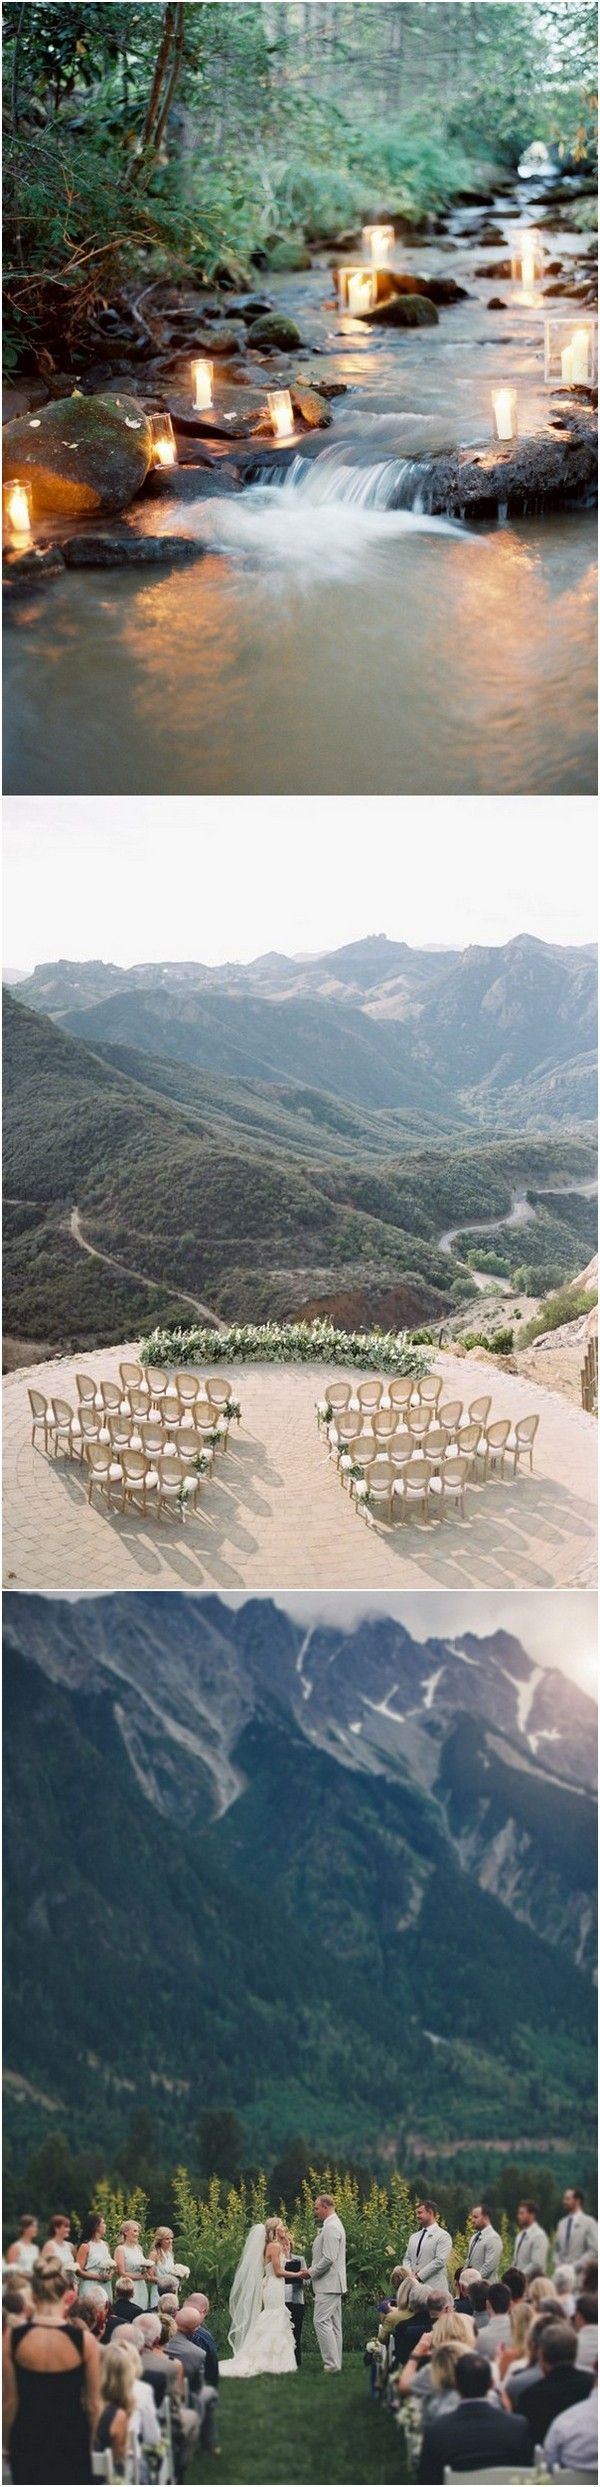 great wedding decoration ideas for mountain weddings_